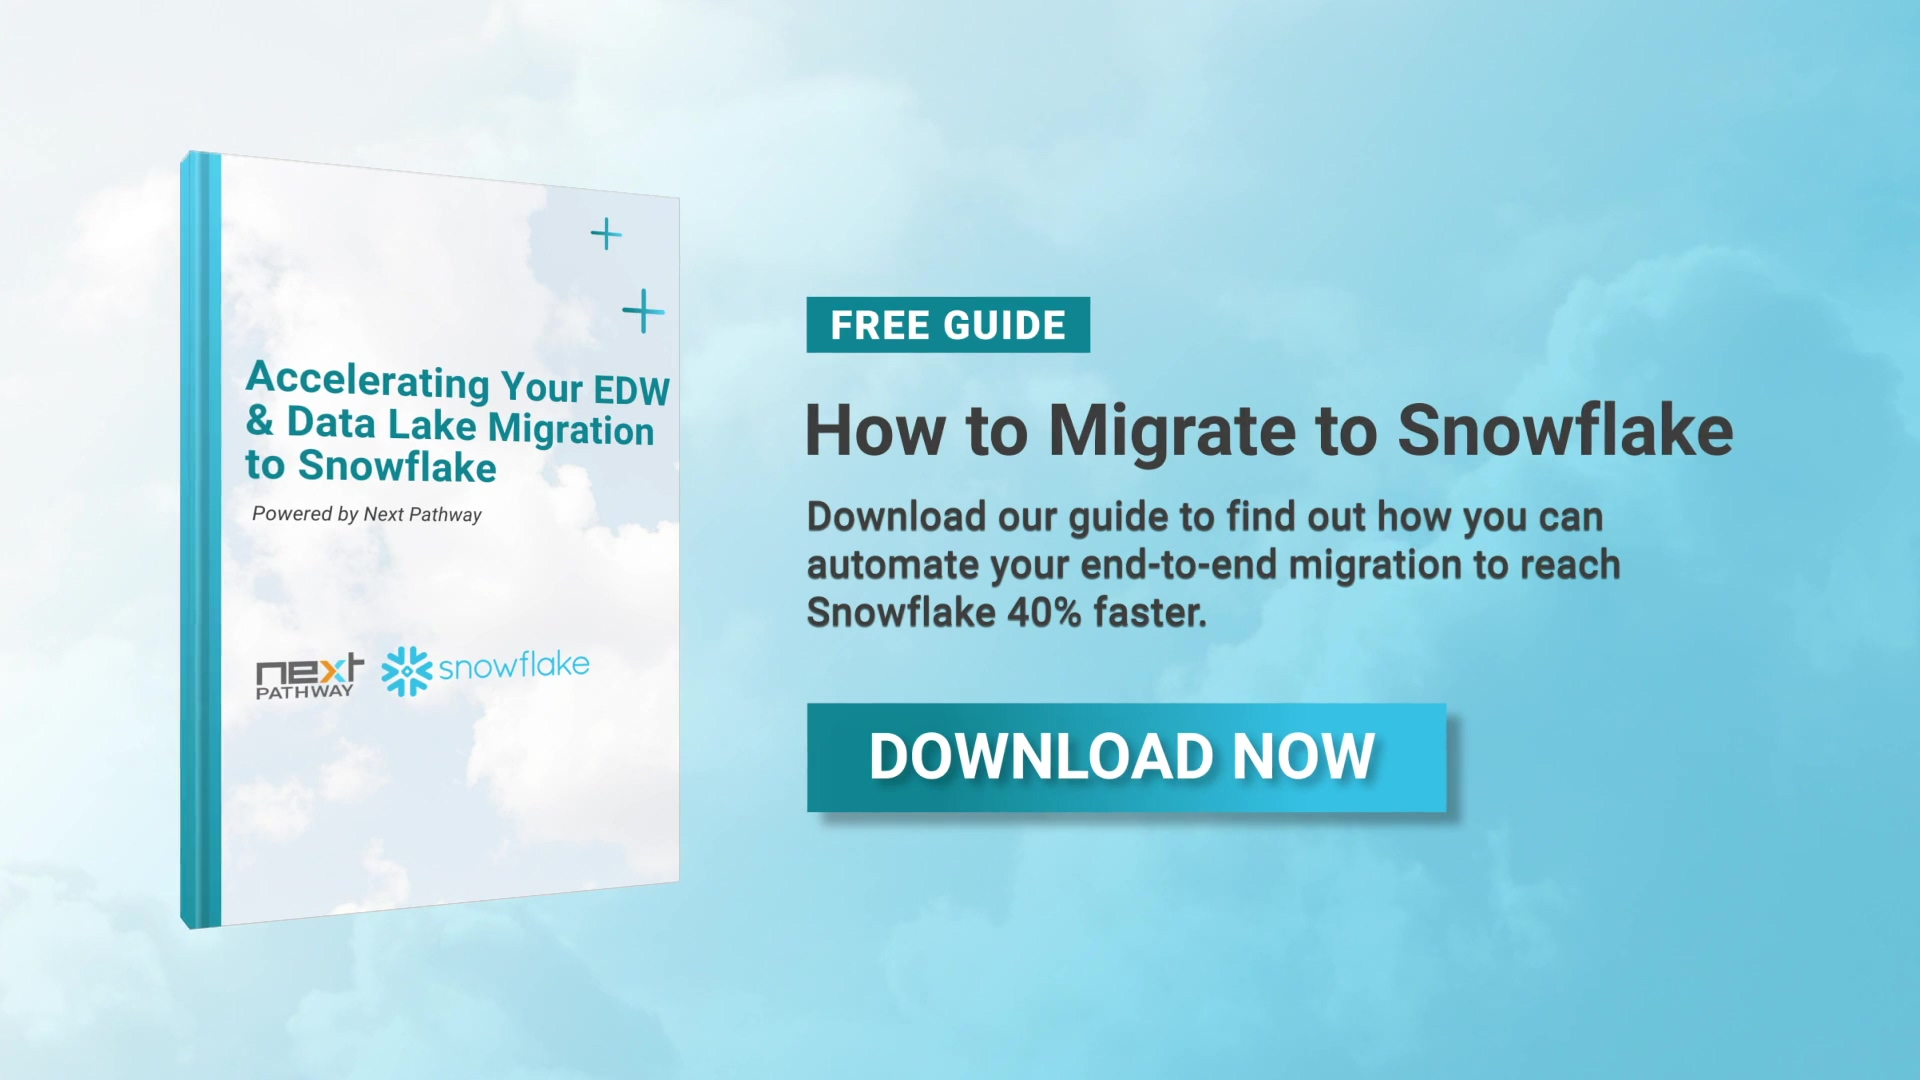 How to Migrate to Snowflake 40% Faster